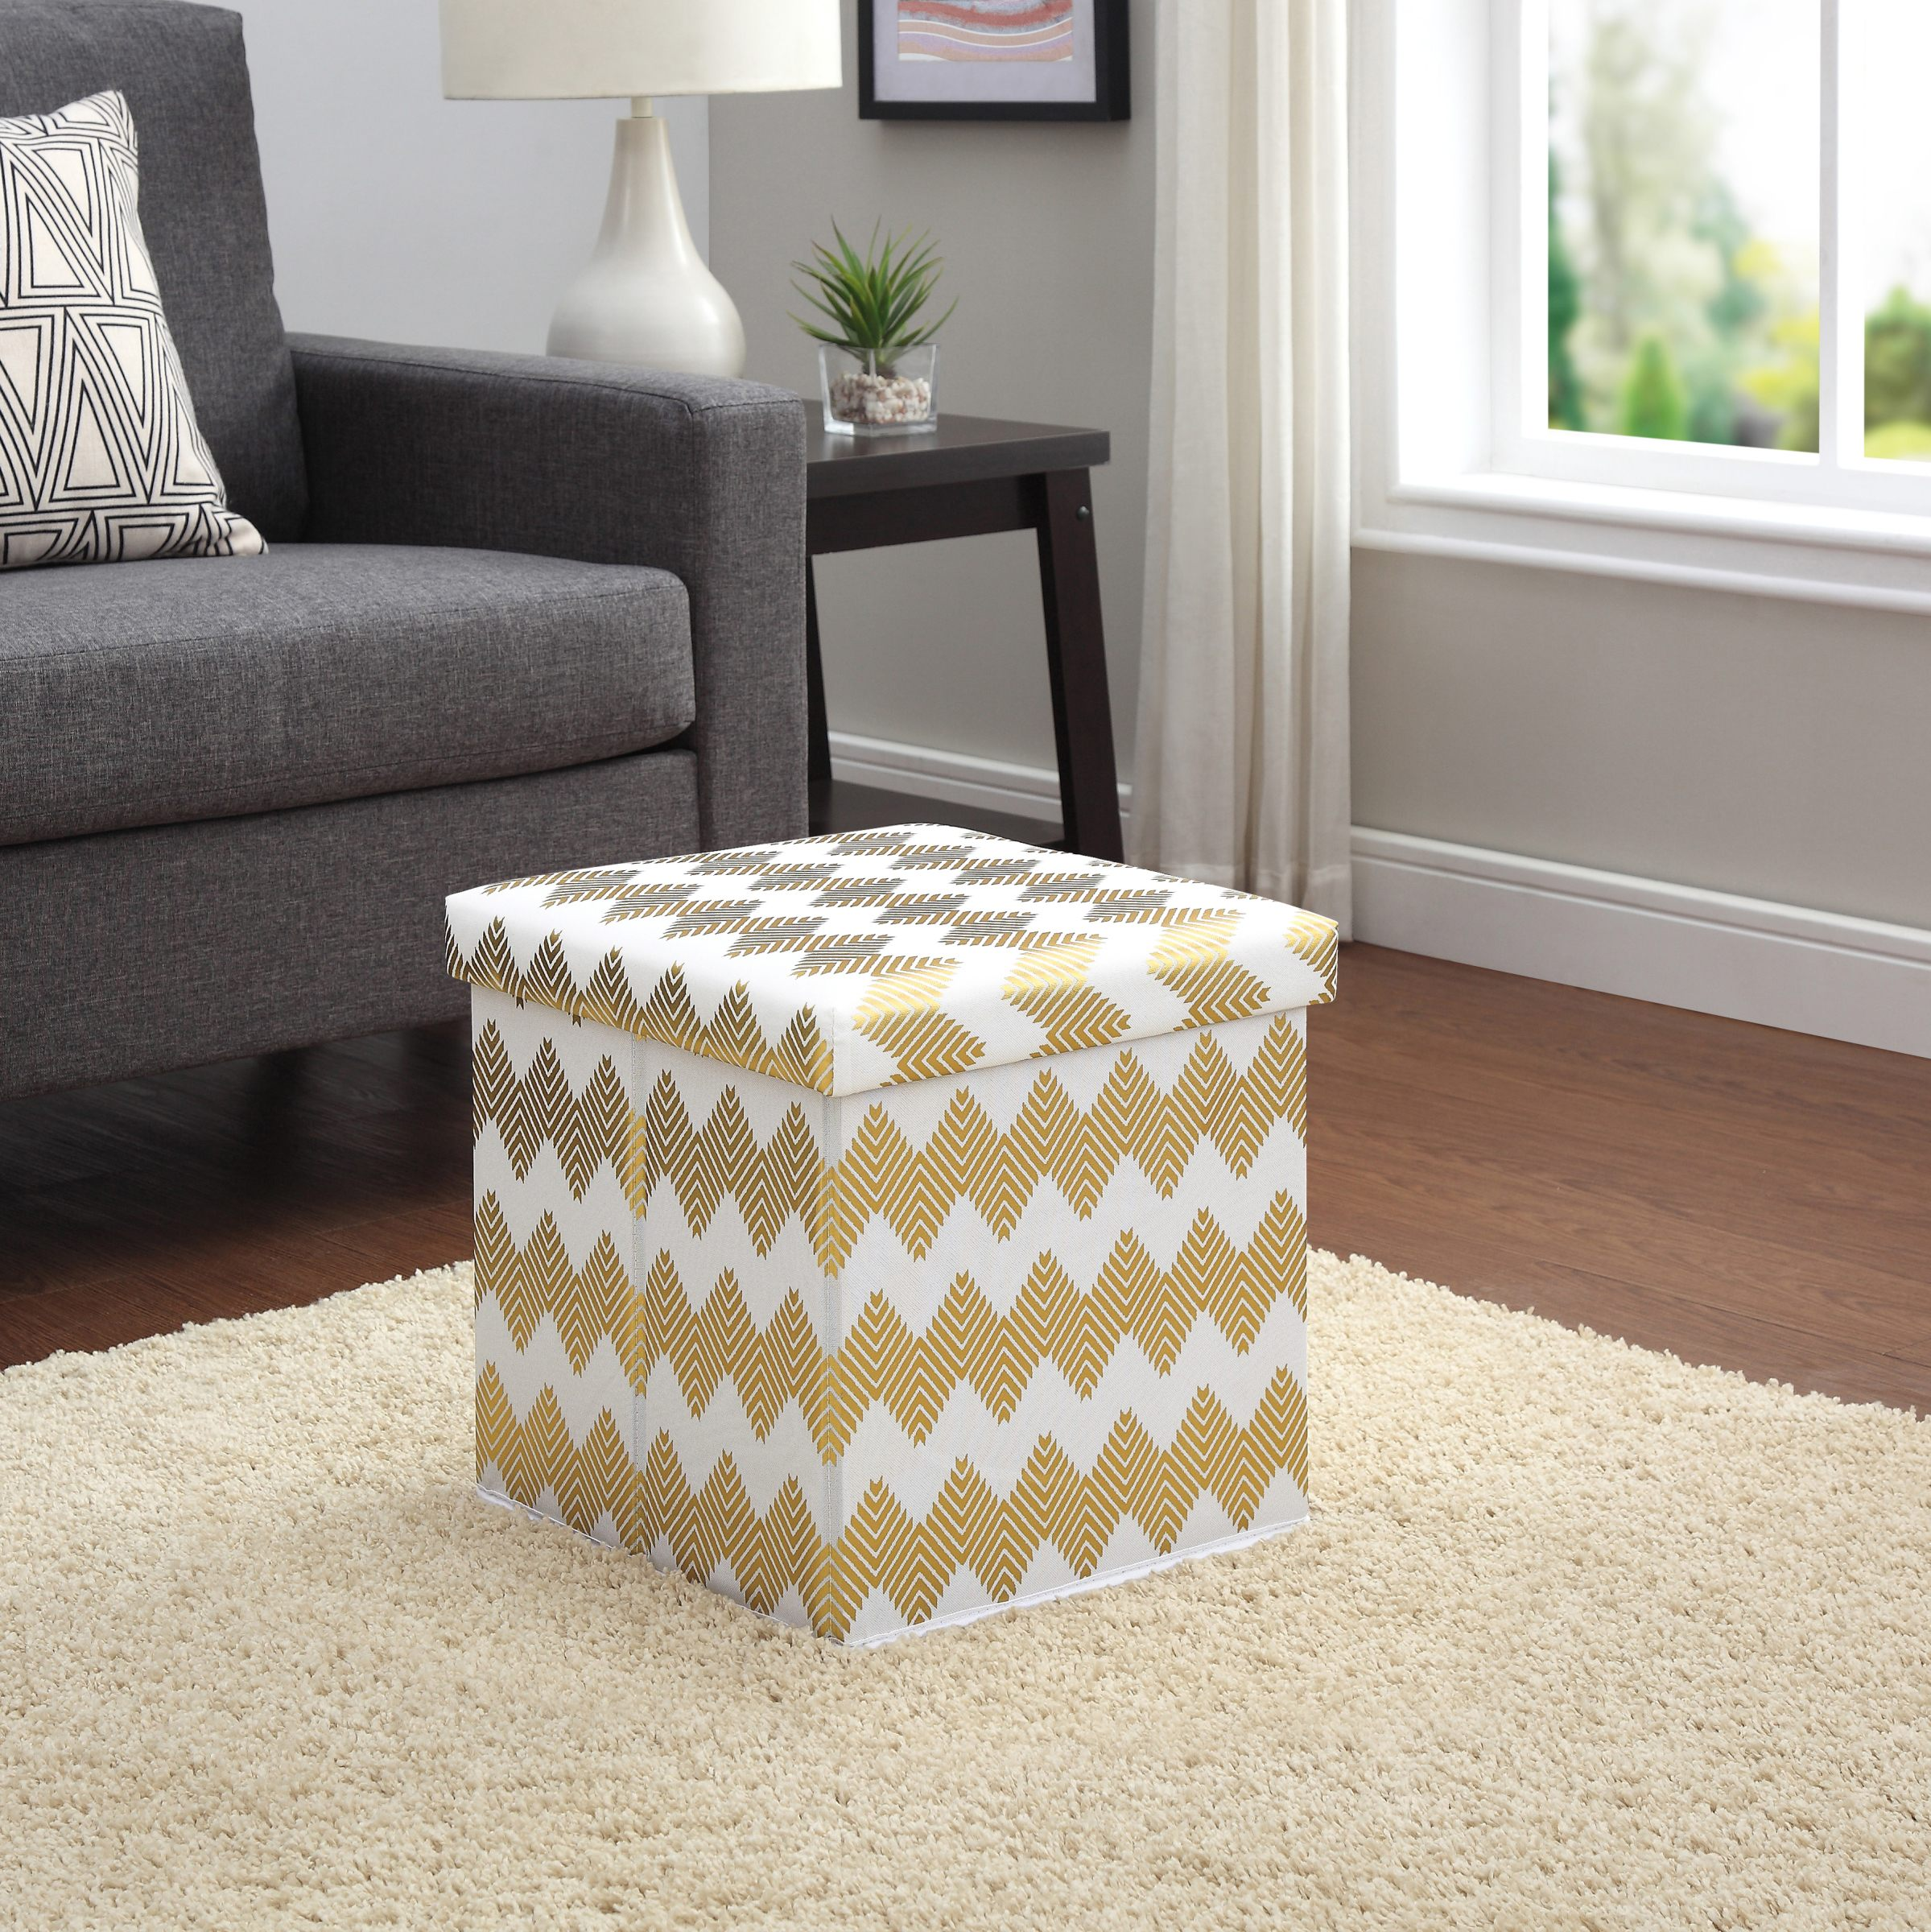 Mainstays Collapsible Storage Ottoman, Chevron Gold